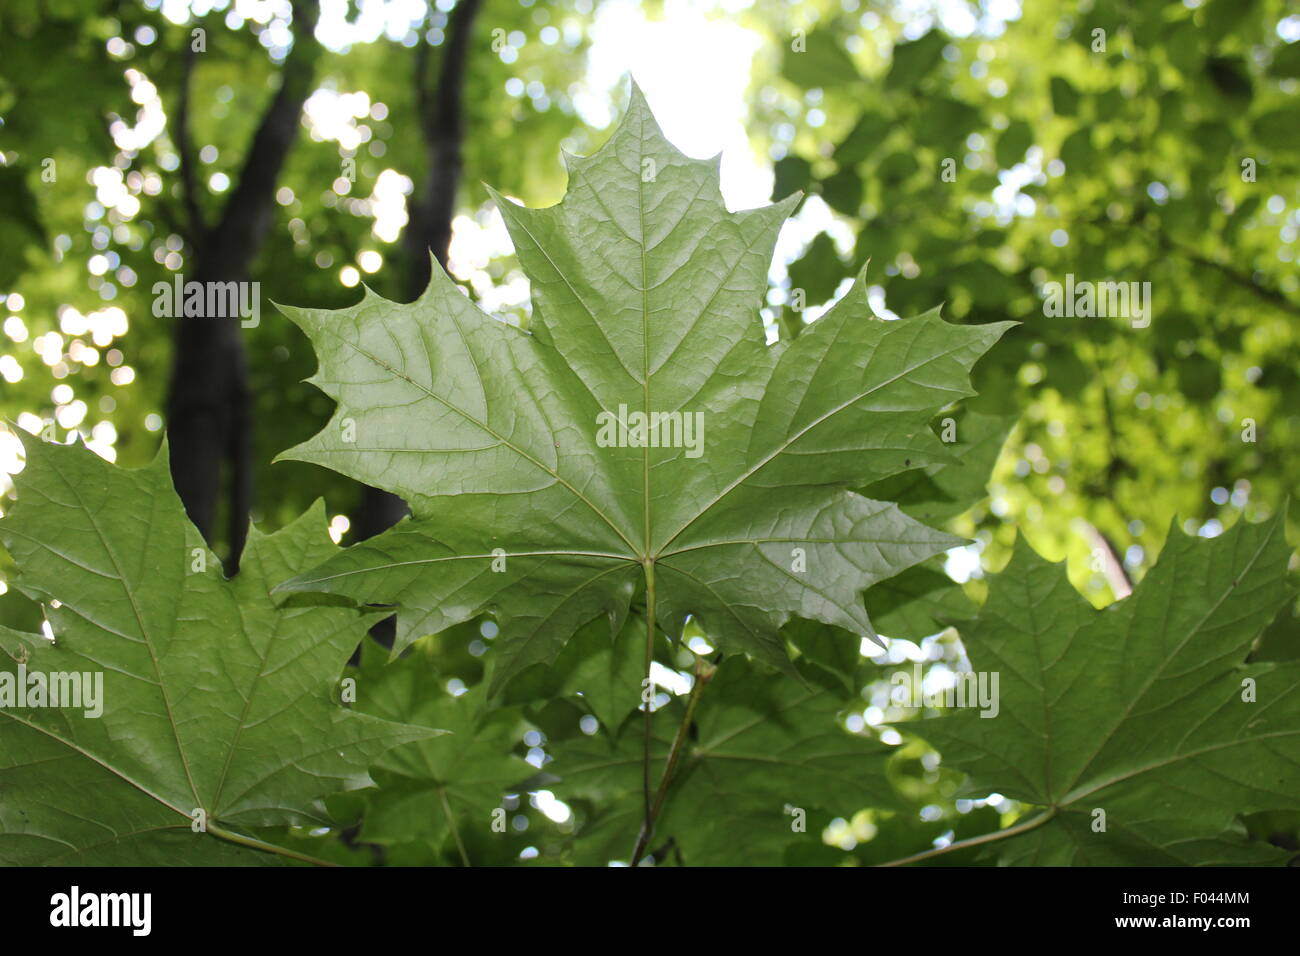 Focused leaves - Stock Image